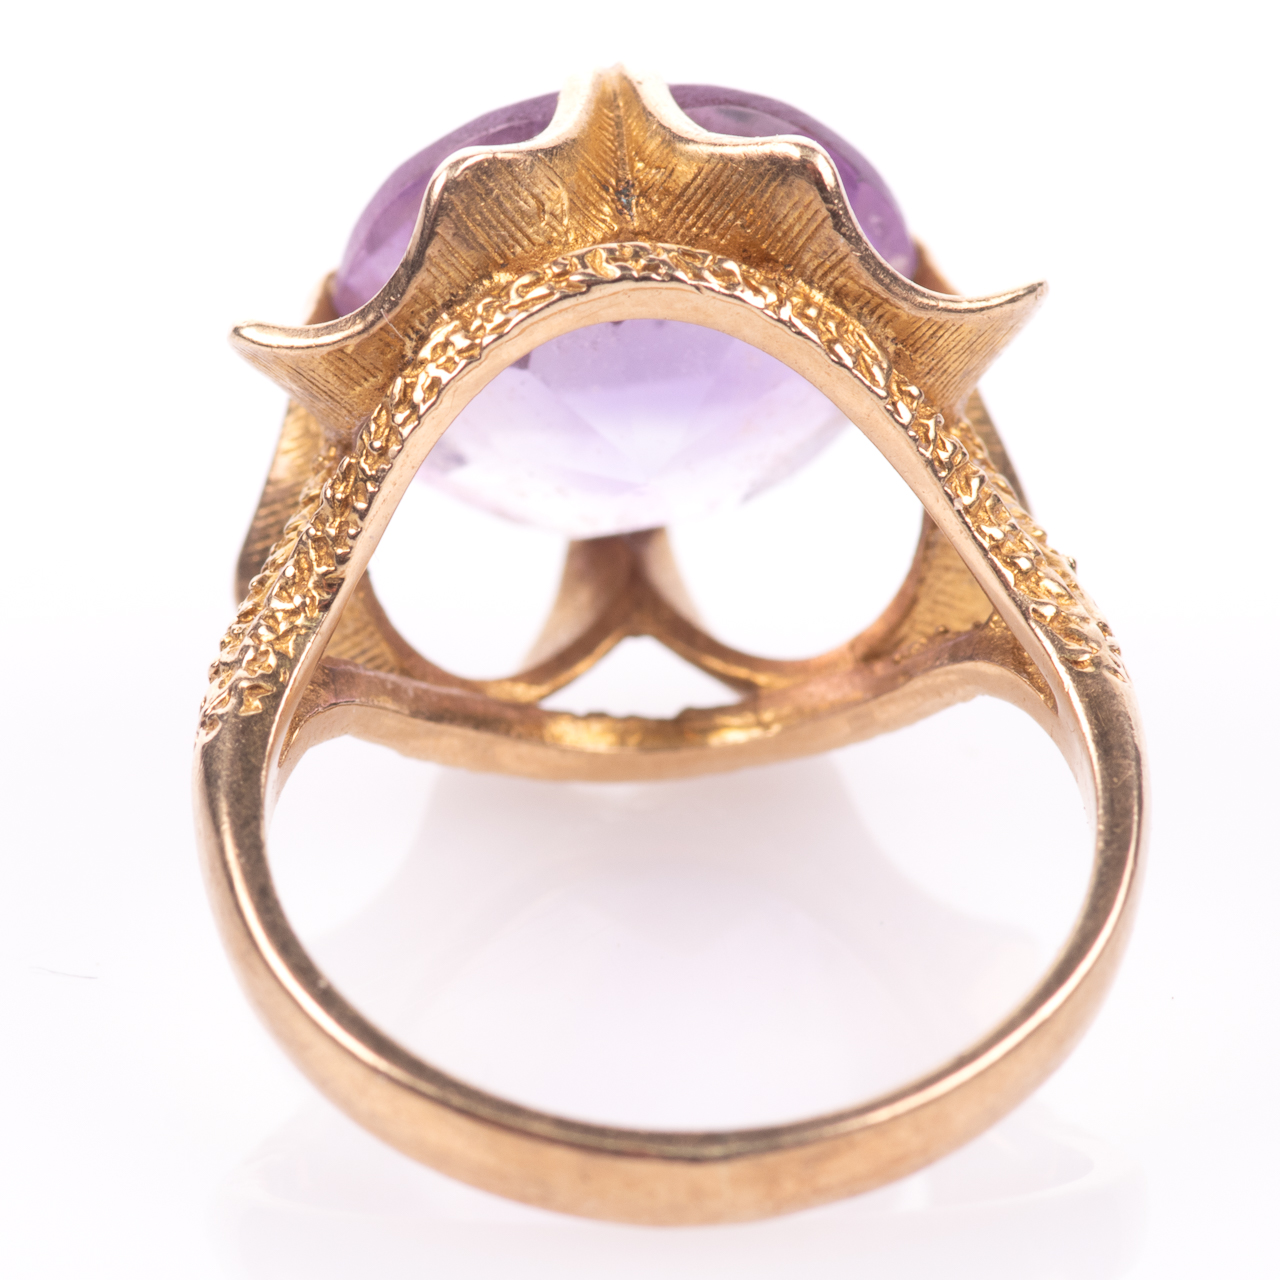 9ct Gold 6.45ct Amethyst Ring London 1974 - Image 6 of 8